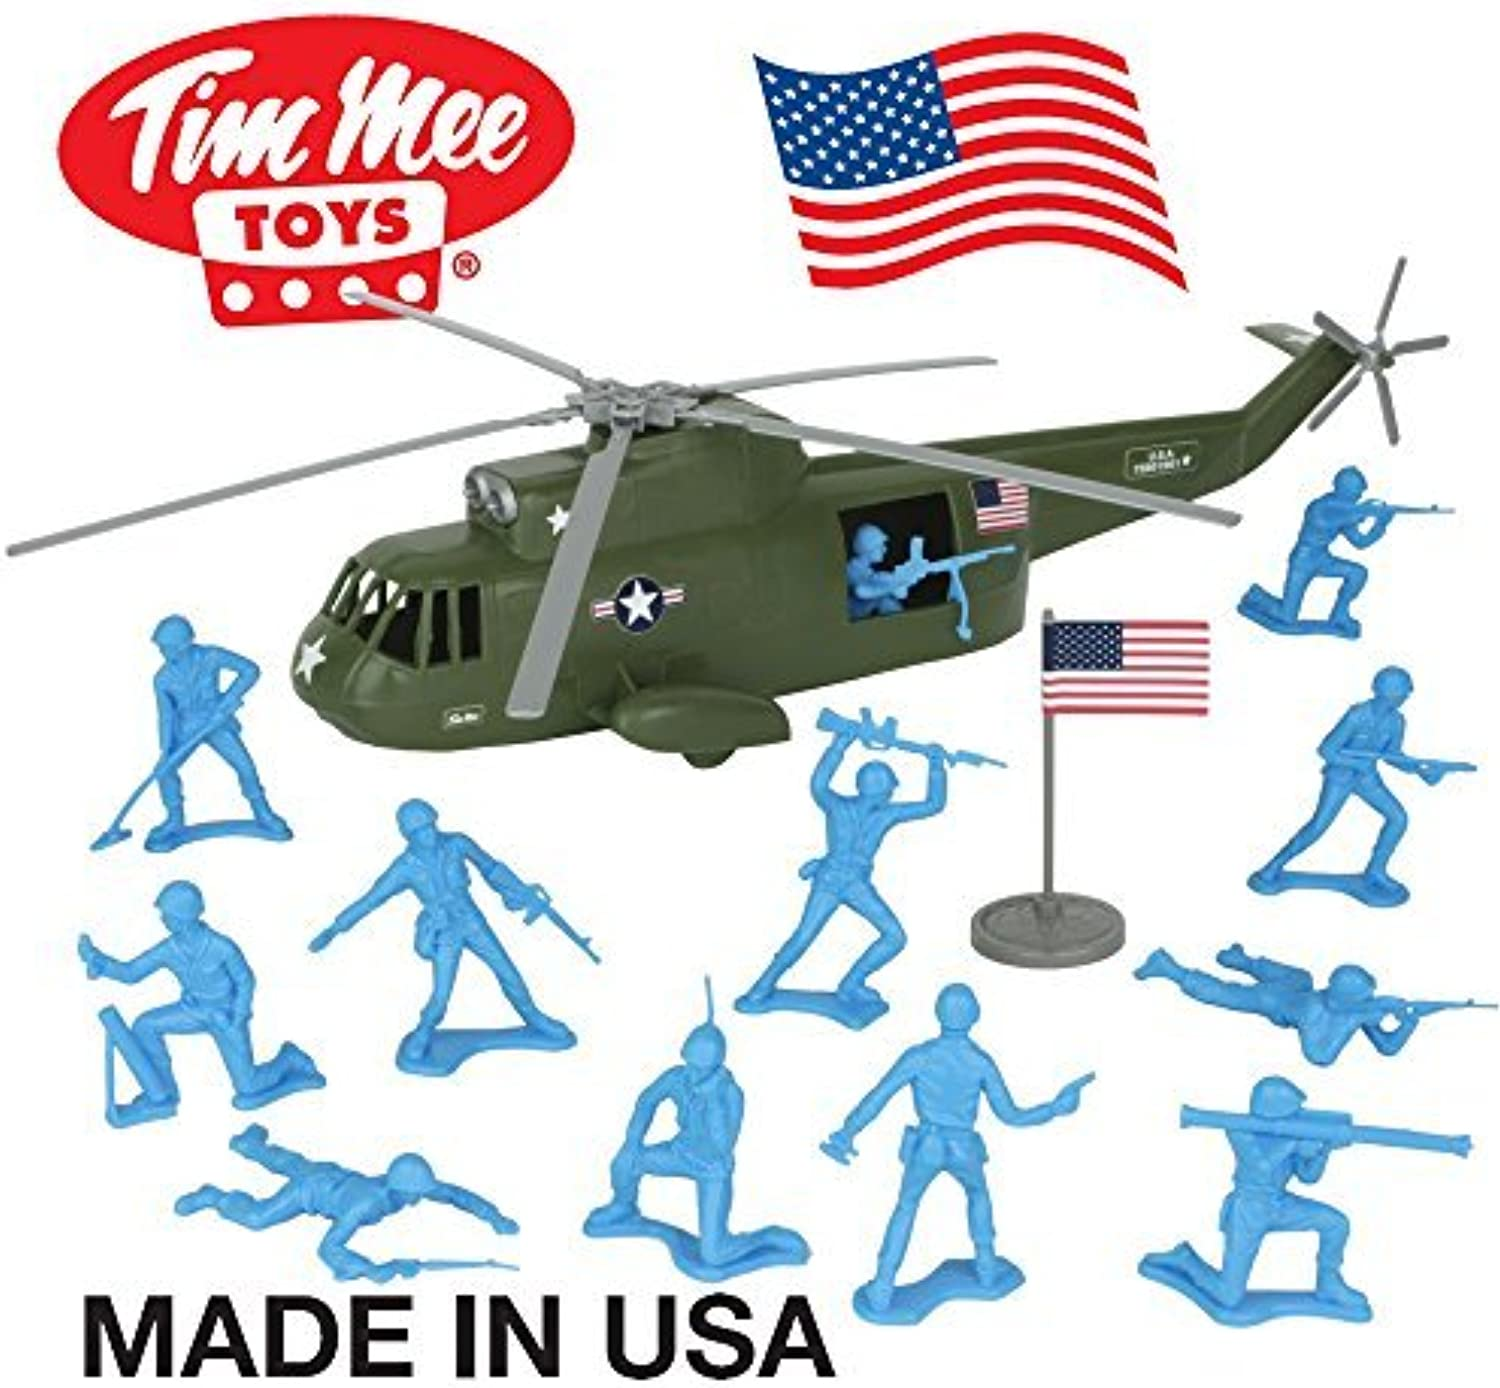 grandes ahorros TimMee Plastic Army Men HELICOPTER Jugarset    Olive verde 26pc - Made in USA by Tim Mee  ¡envío gratis!